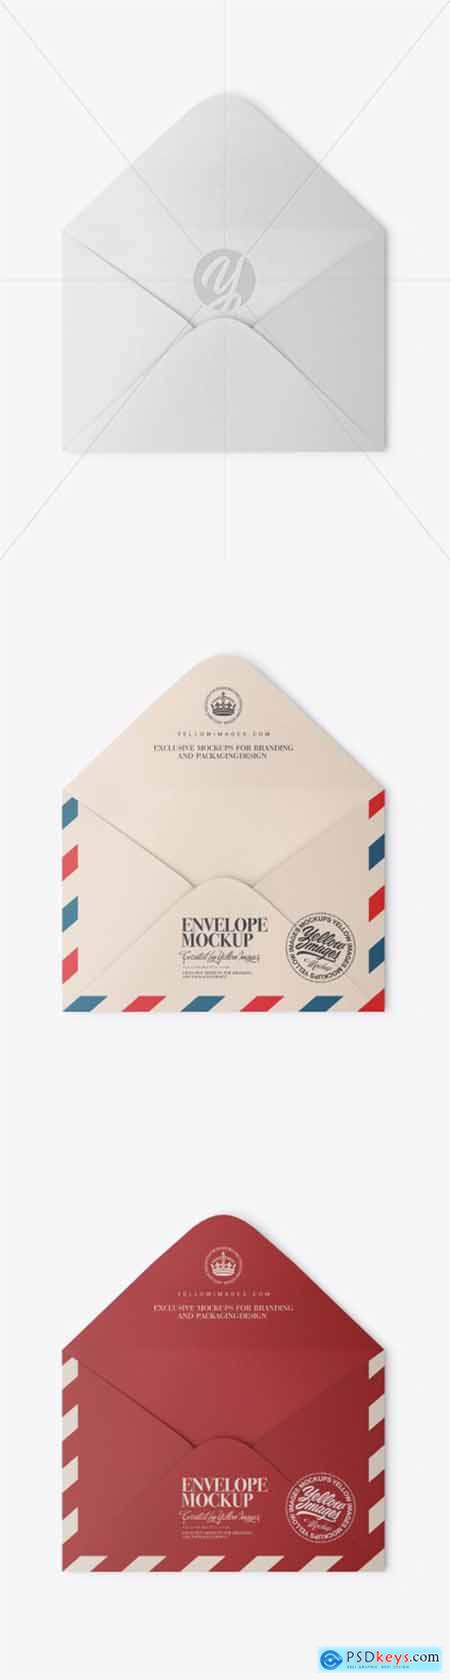 Textured Envelope Mockup 51076